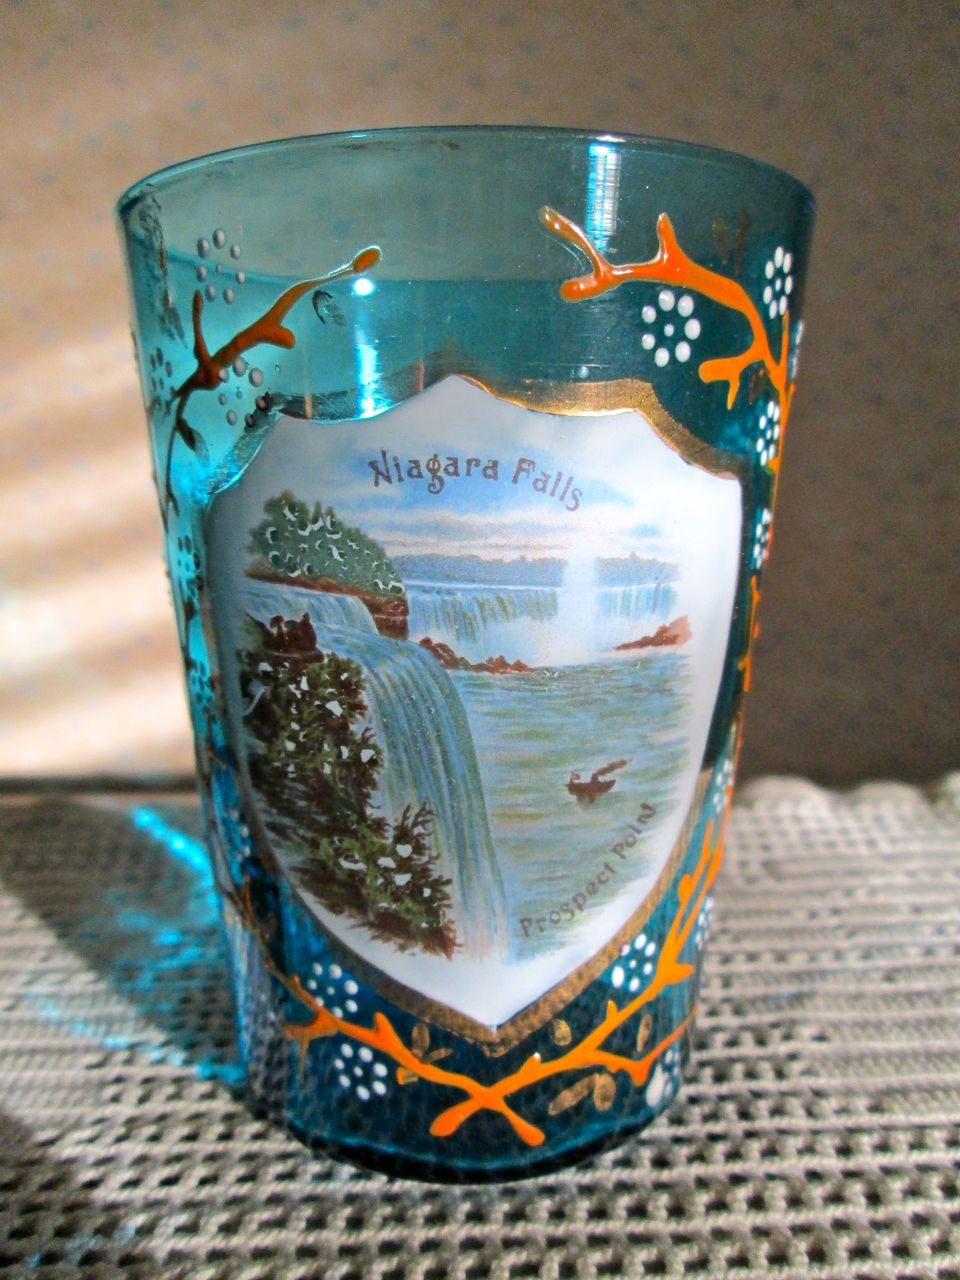 Turn of the Century Niagara Falls Souvenir Glass